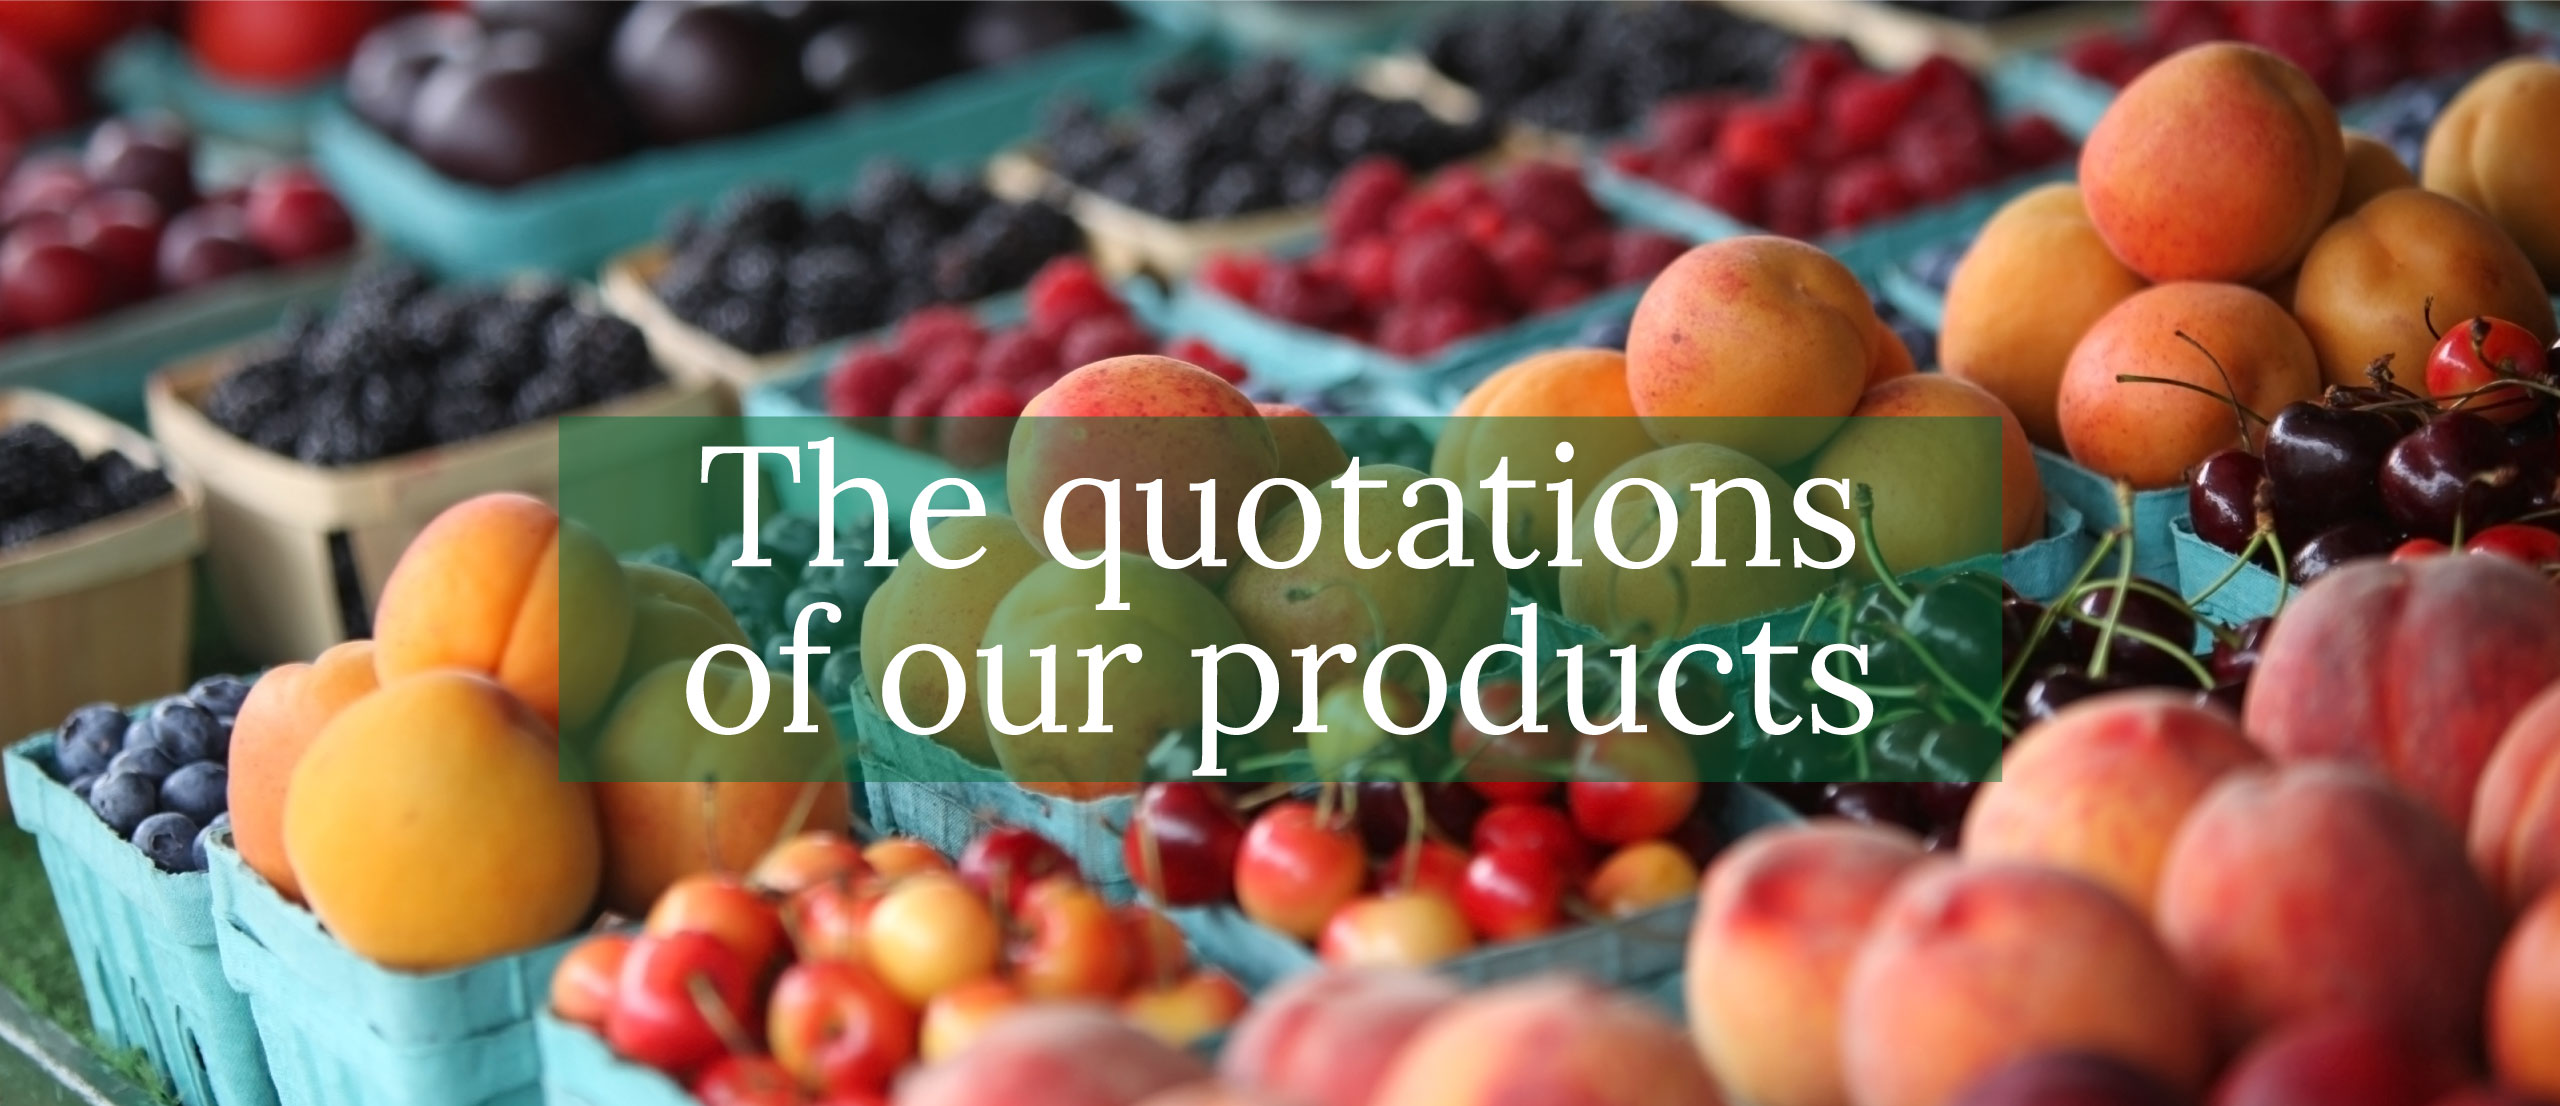 The quotations of our products - Ortofrutta Lo Casto